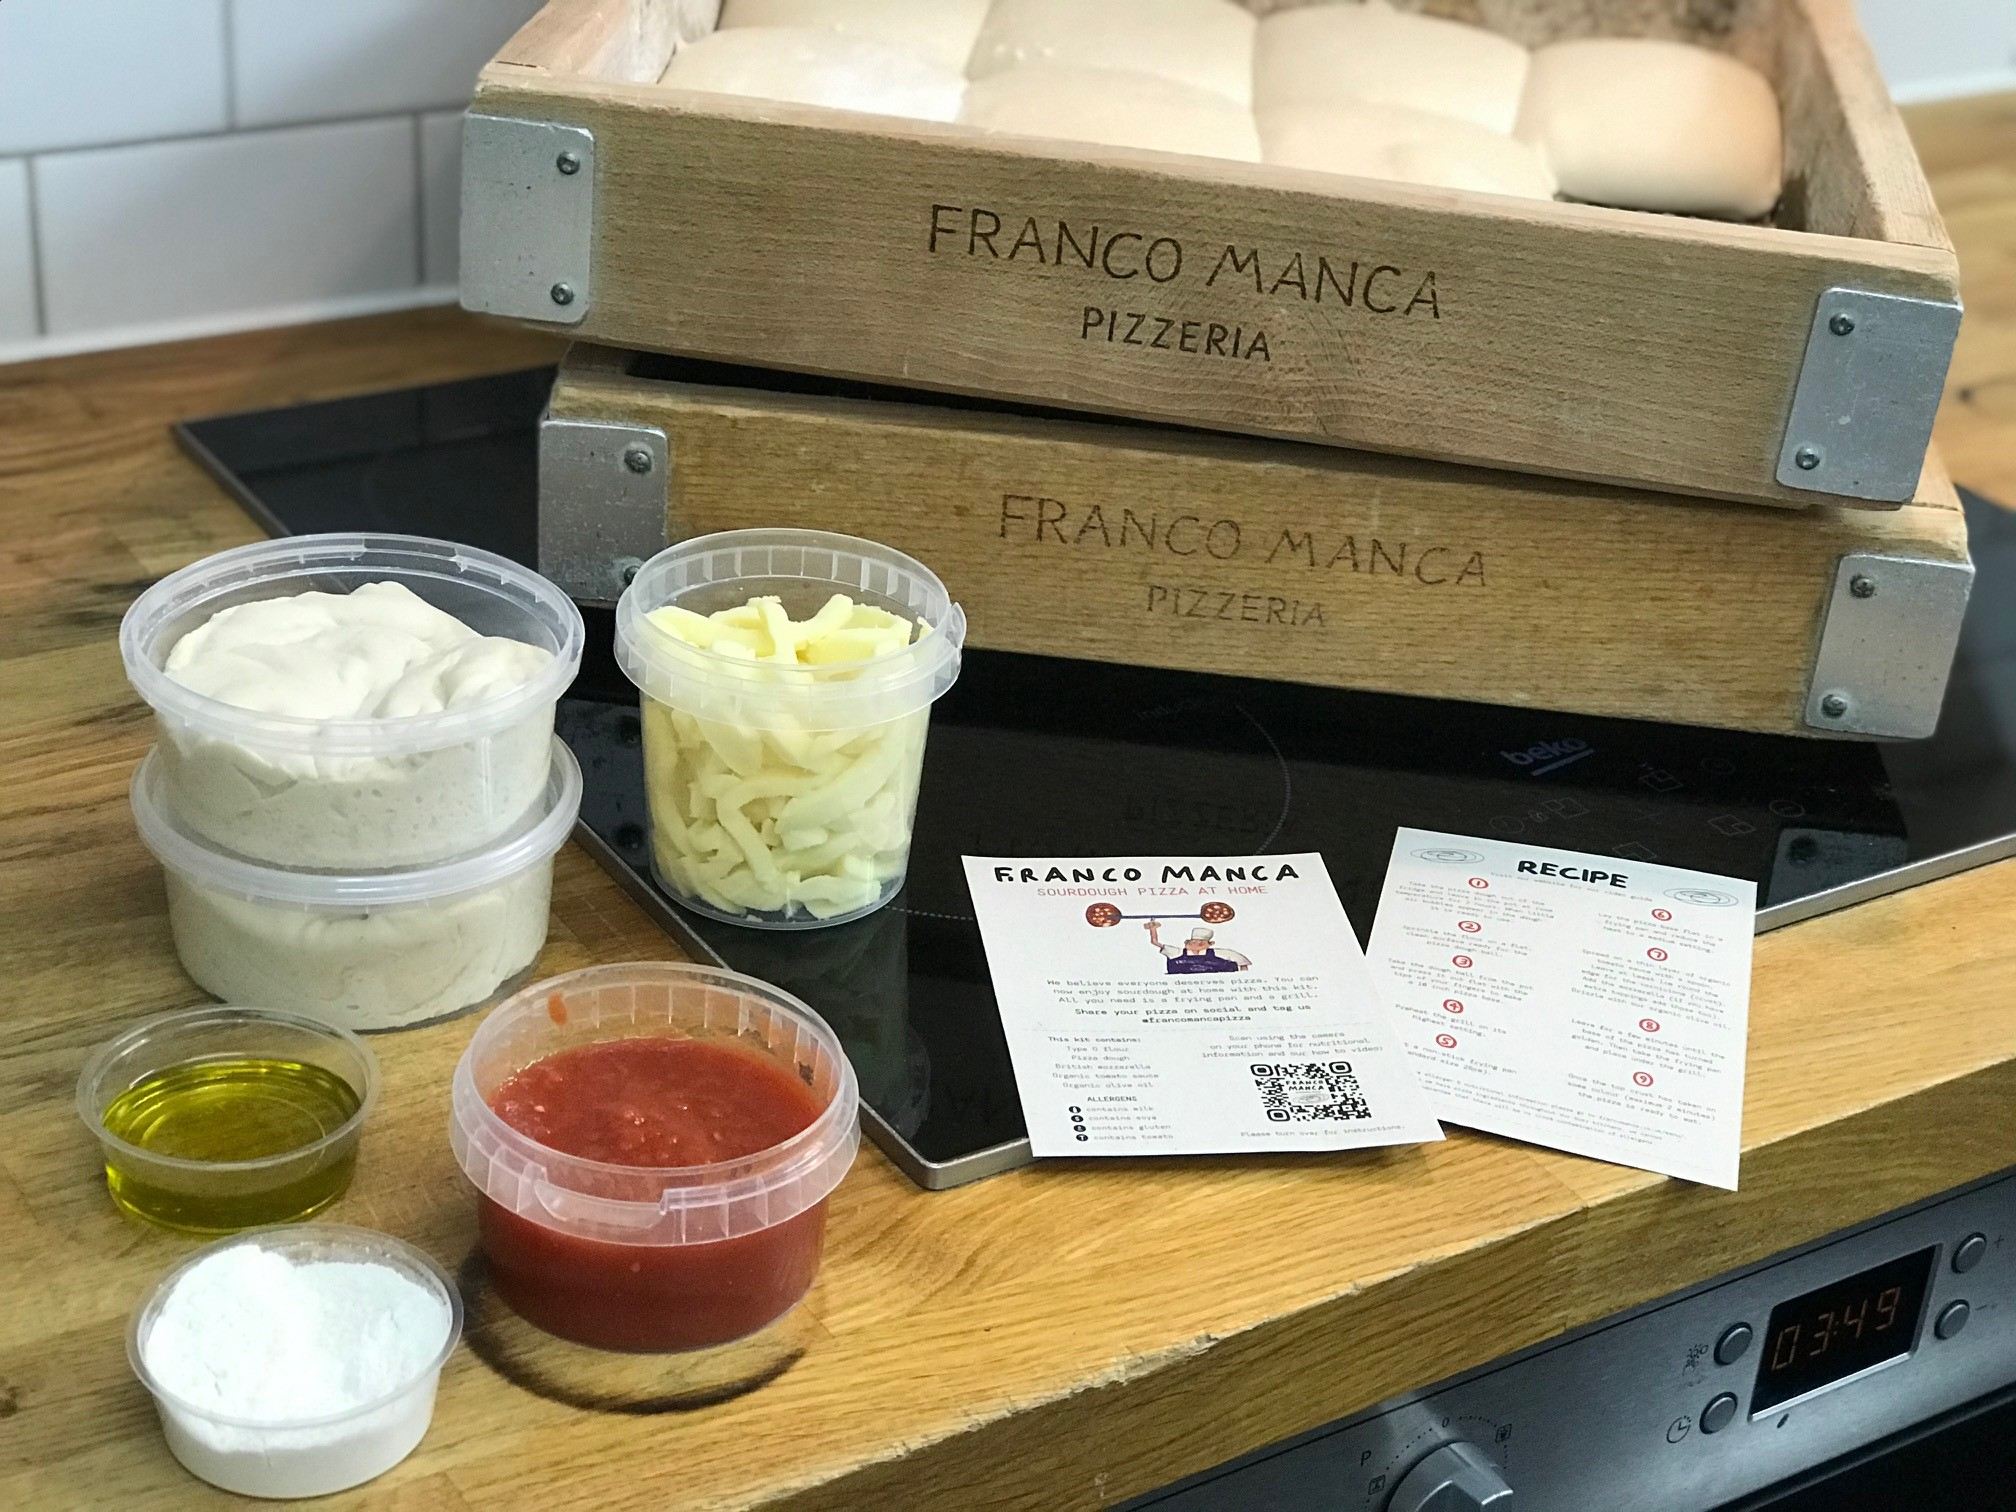 Franco Manca pizza delivery kits